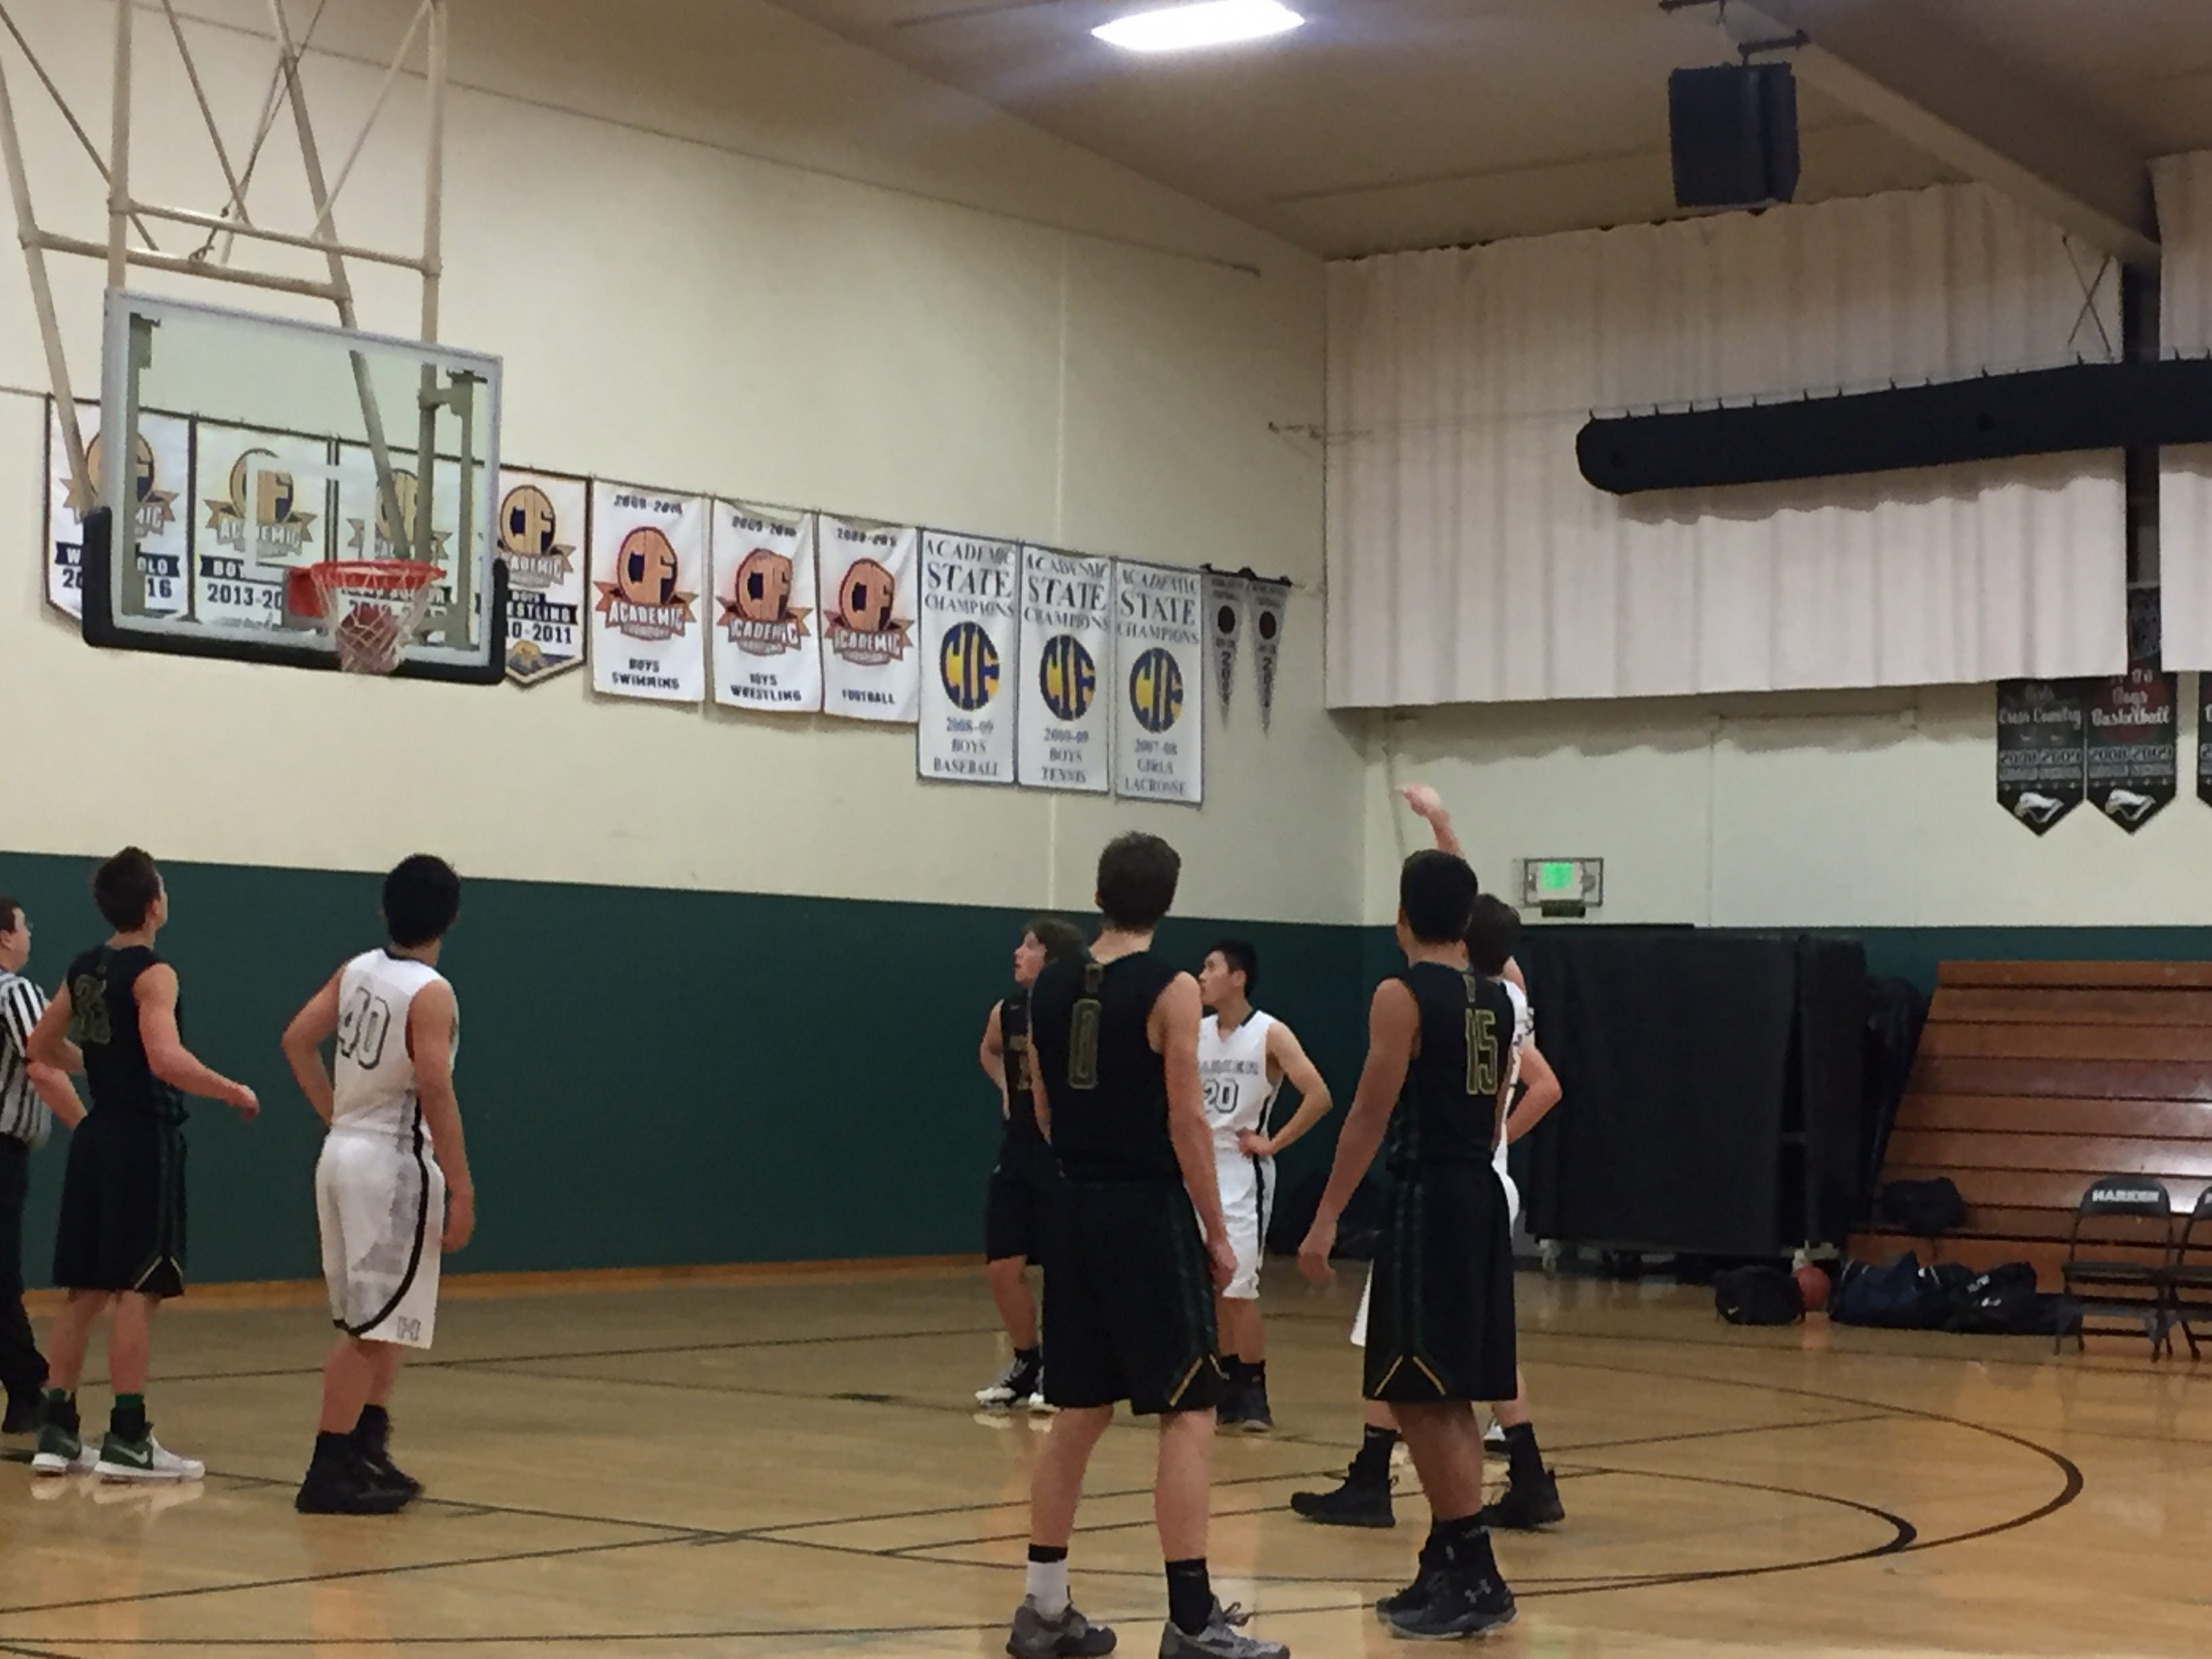 A Harker player makes a free throw during the first quarter of the game. The score at the end of the game was 38-66.